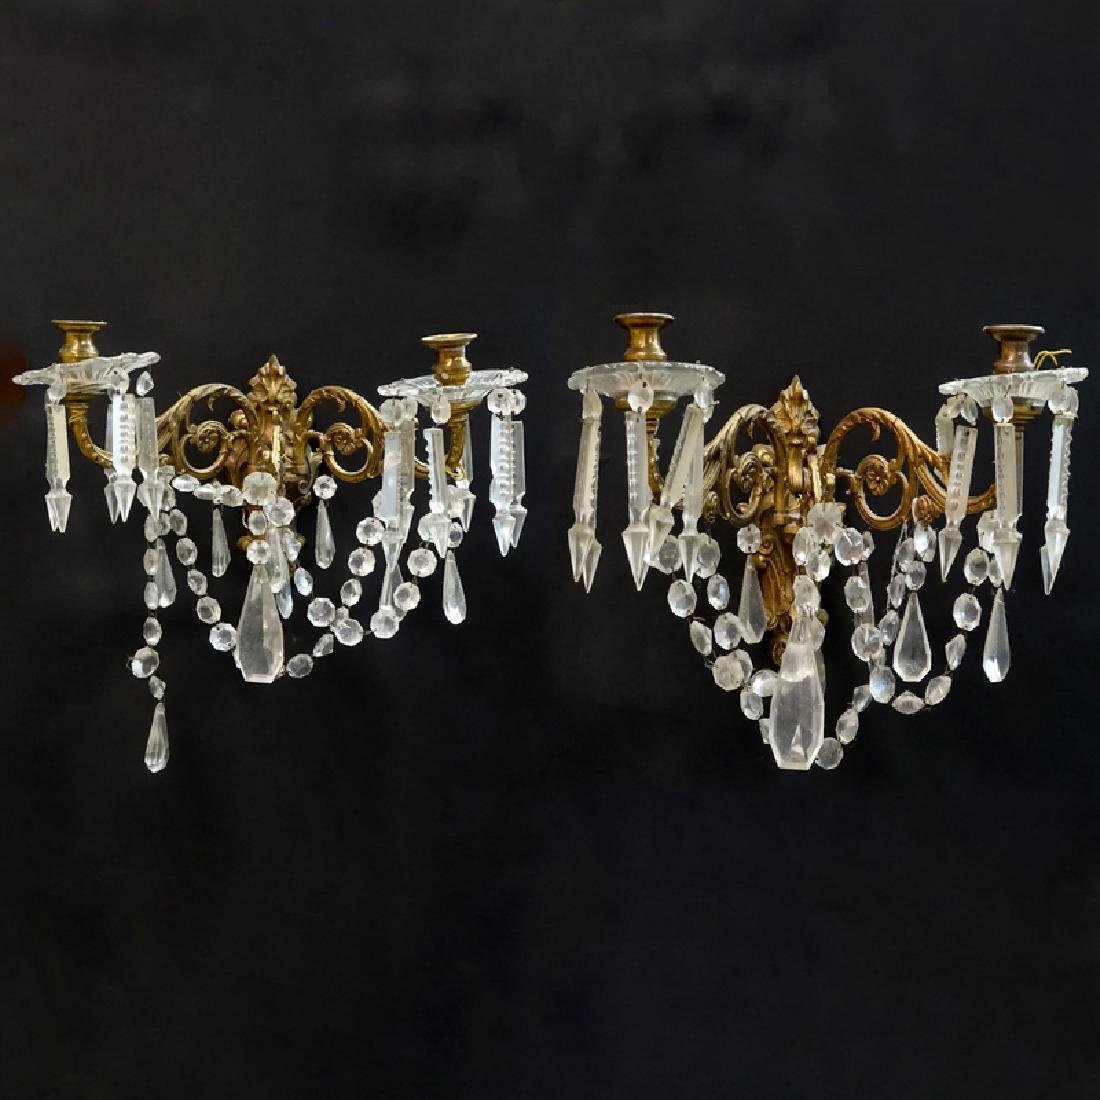 Pair of Gilt Brass and Crystal Wall Sconces. Rubbing to